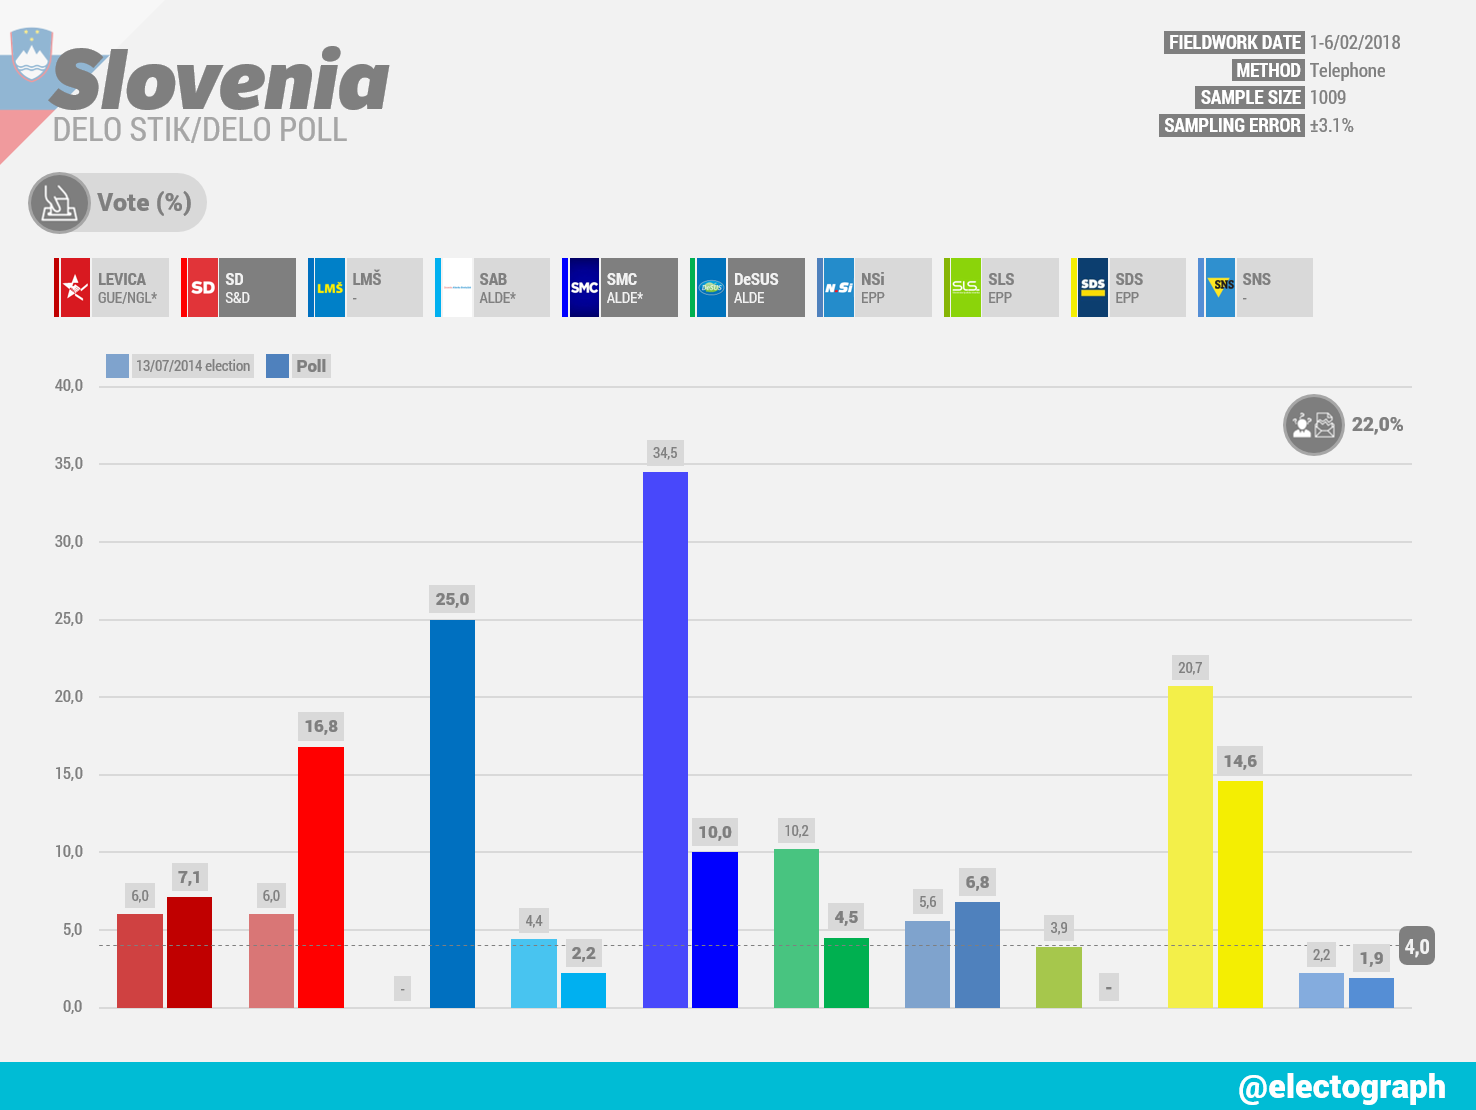 SLOVENIA Delo Stik poll chart for Delo, 12 February 2018